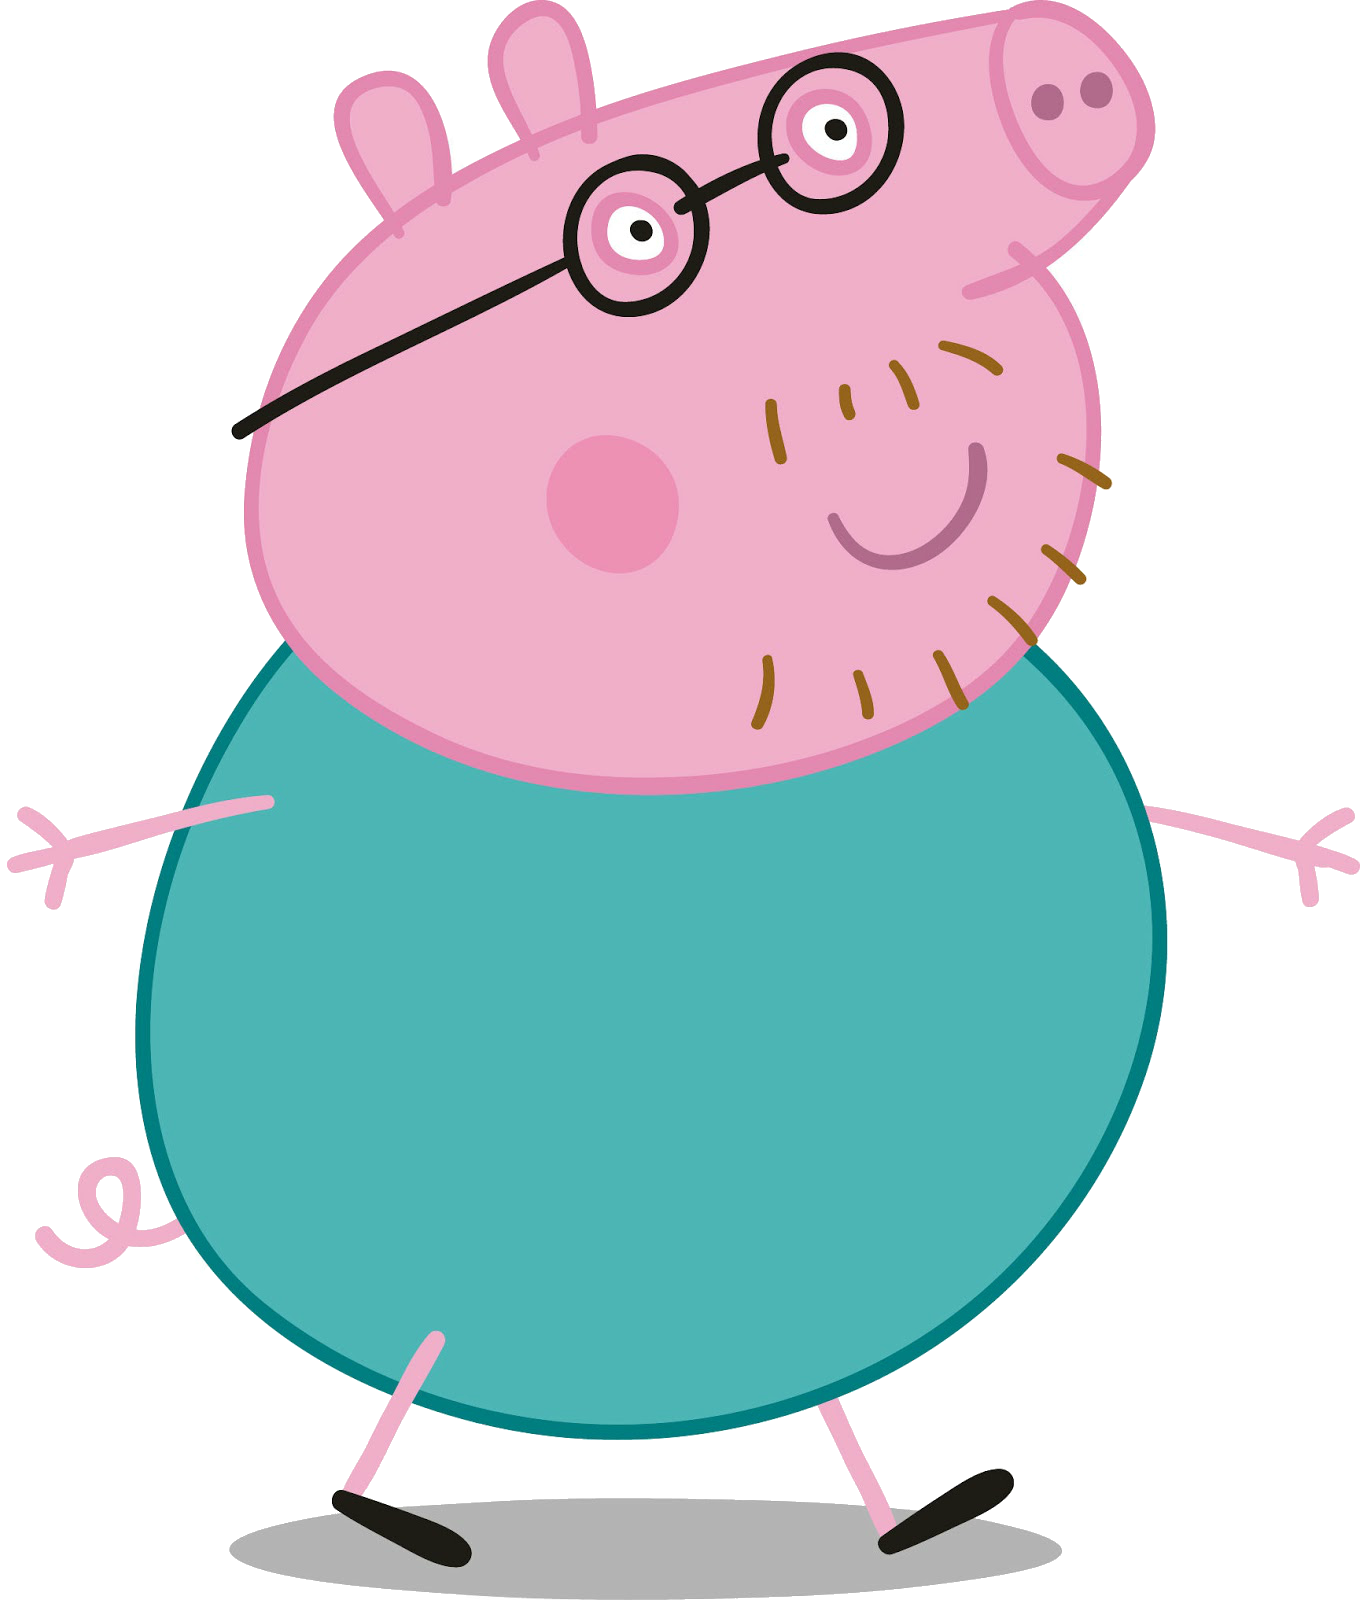 House clipart peppa pig. Cartoon characters png pack